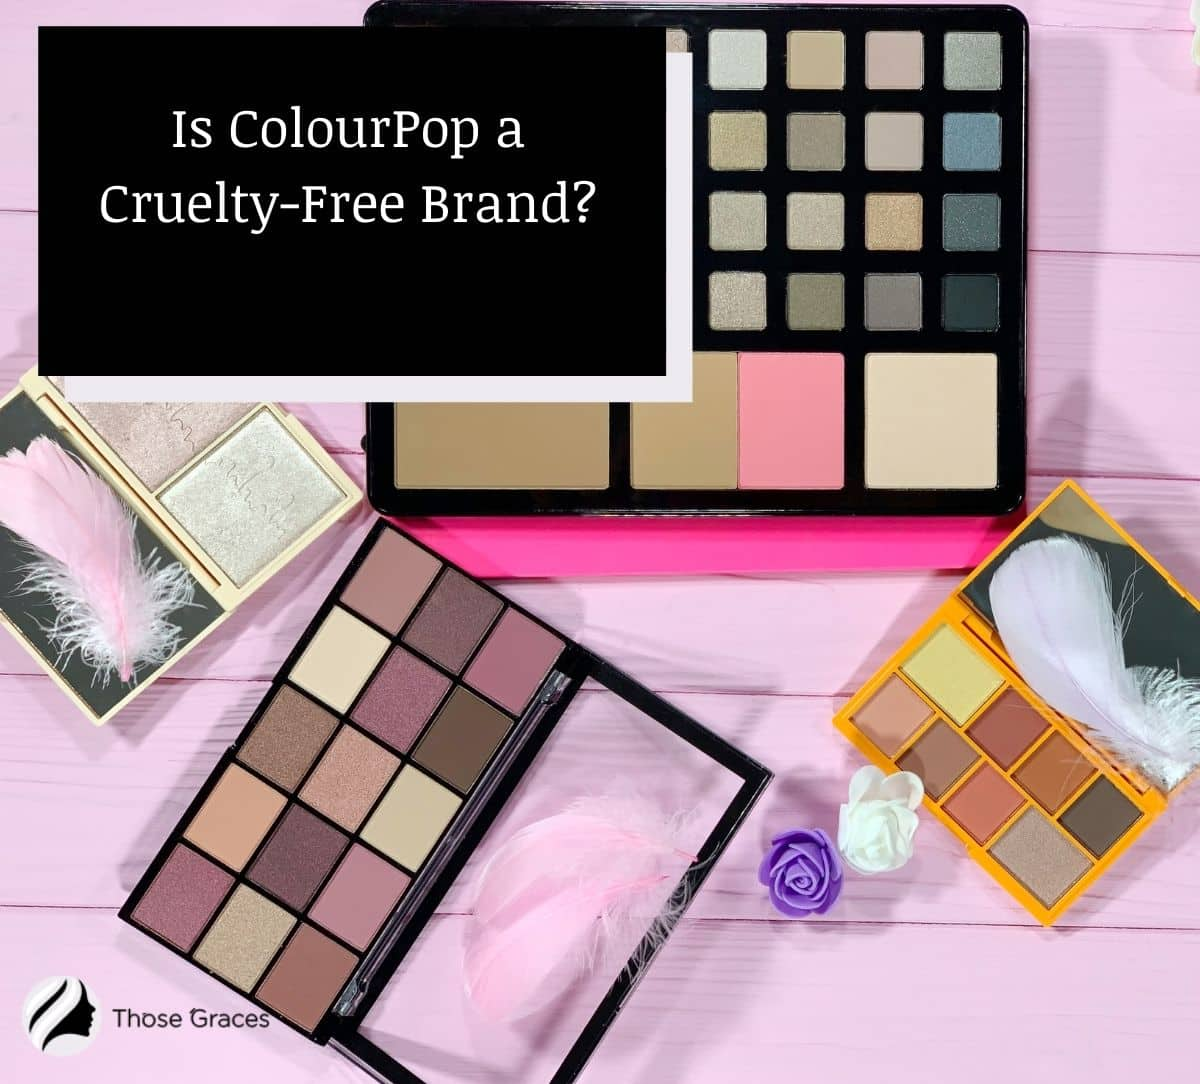 makeup shadow palettes by ColourPop: Is ColourPop Cruelty-Free?